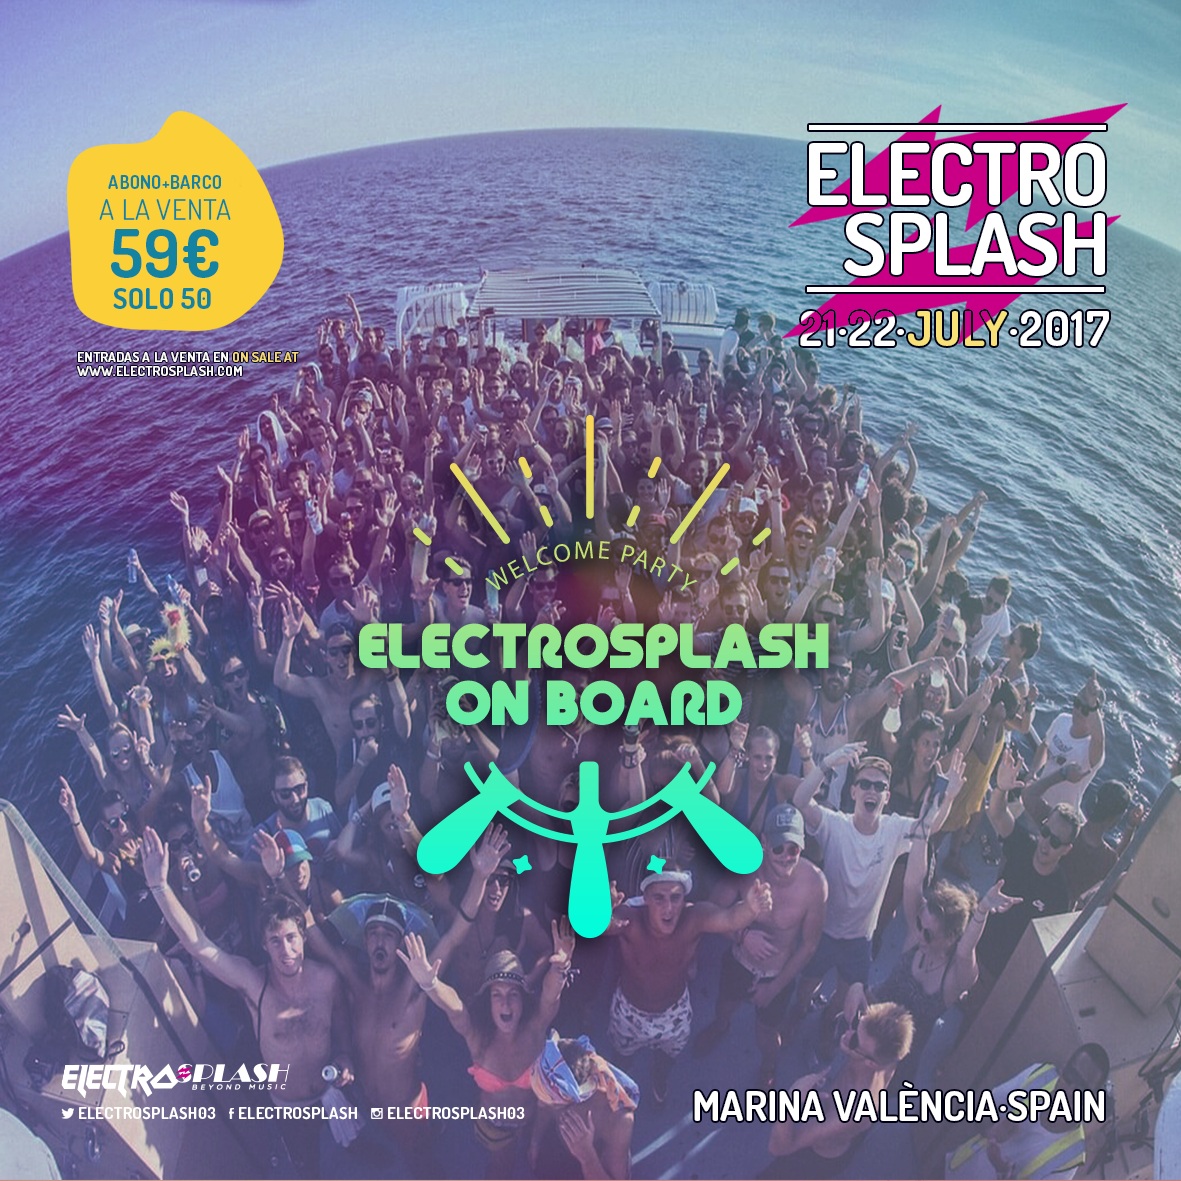 ELECTROSPLASH 2017 ON BOARD  ELECTROSPLASH 2017 DESVELA SU CARTEL POR DÍAS ELECTROSPLASH 2017 ON BOARD